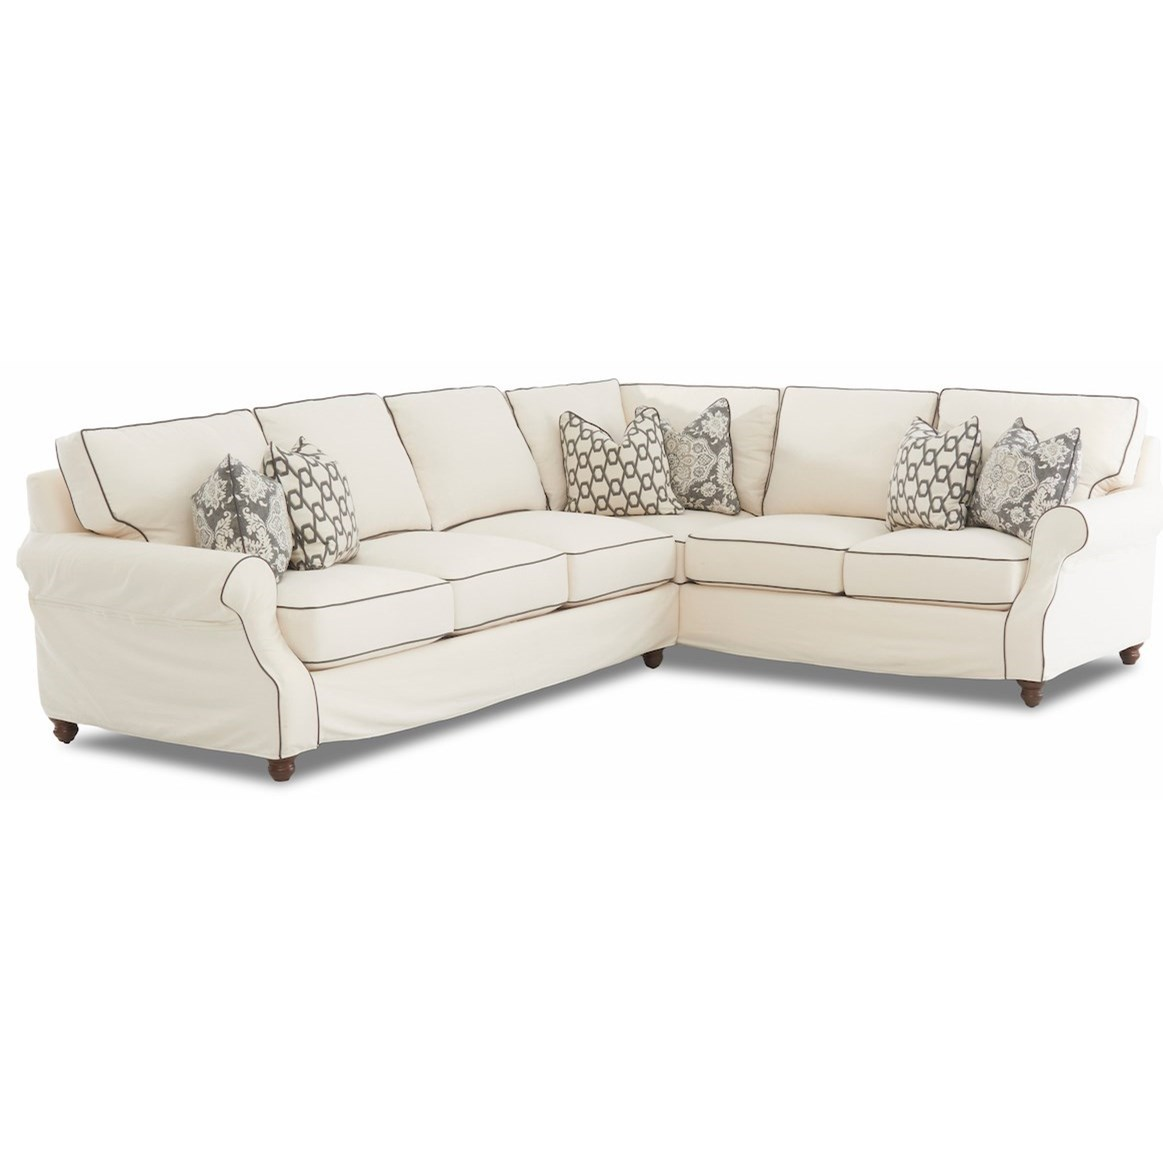 Klaussner Tifton Traditional 2 Piece Slipcover Sectional